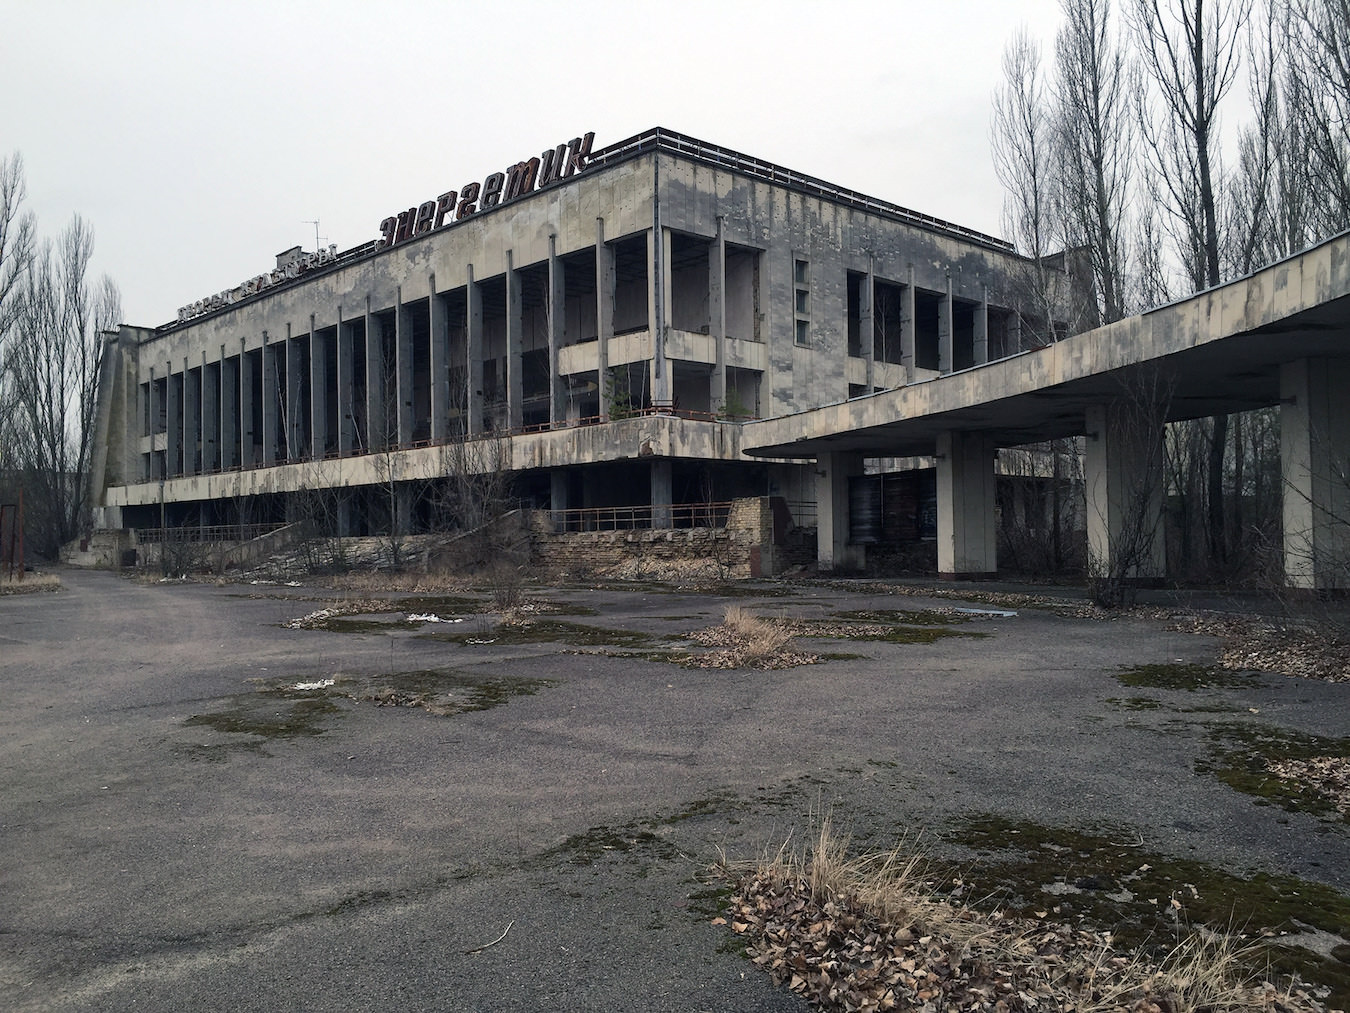 Prypjat was once a city of almost 50.000 people. Now it's a ghost town since 1986.